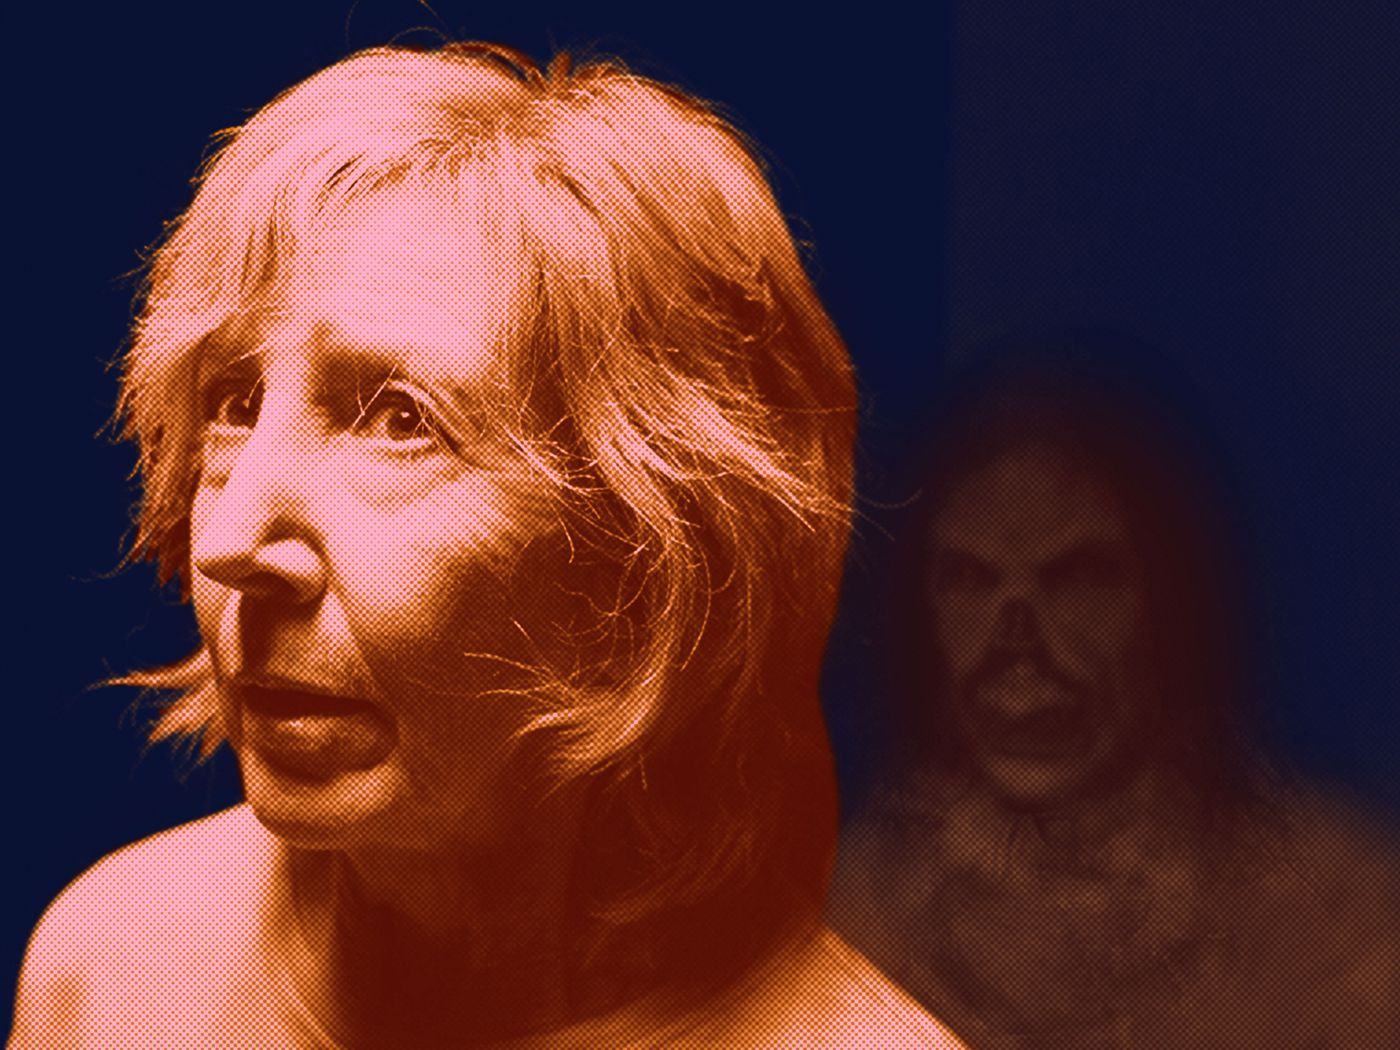 Lin Shaye S Performance Is The Best Part Of Insidious The Last Key The Ringer